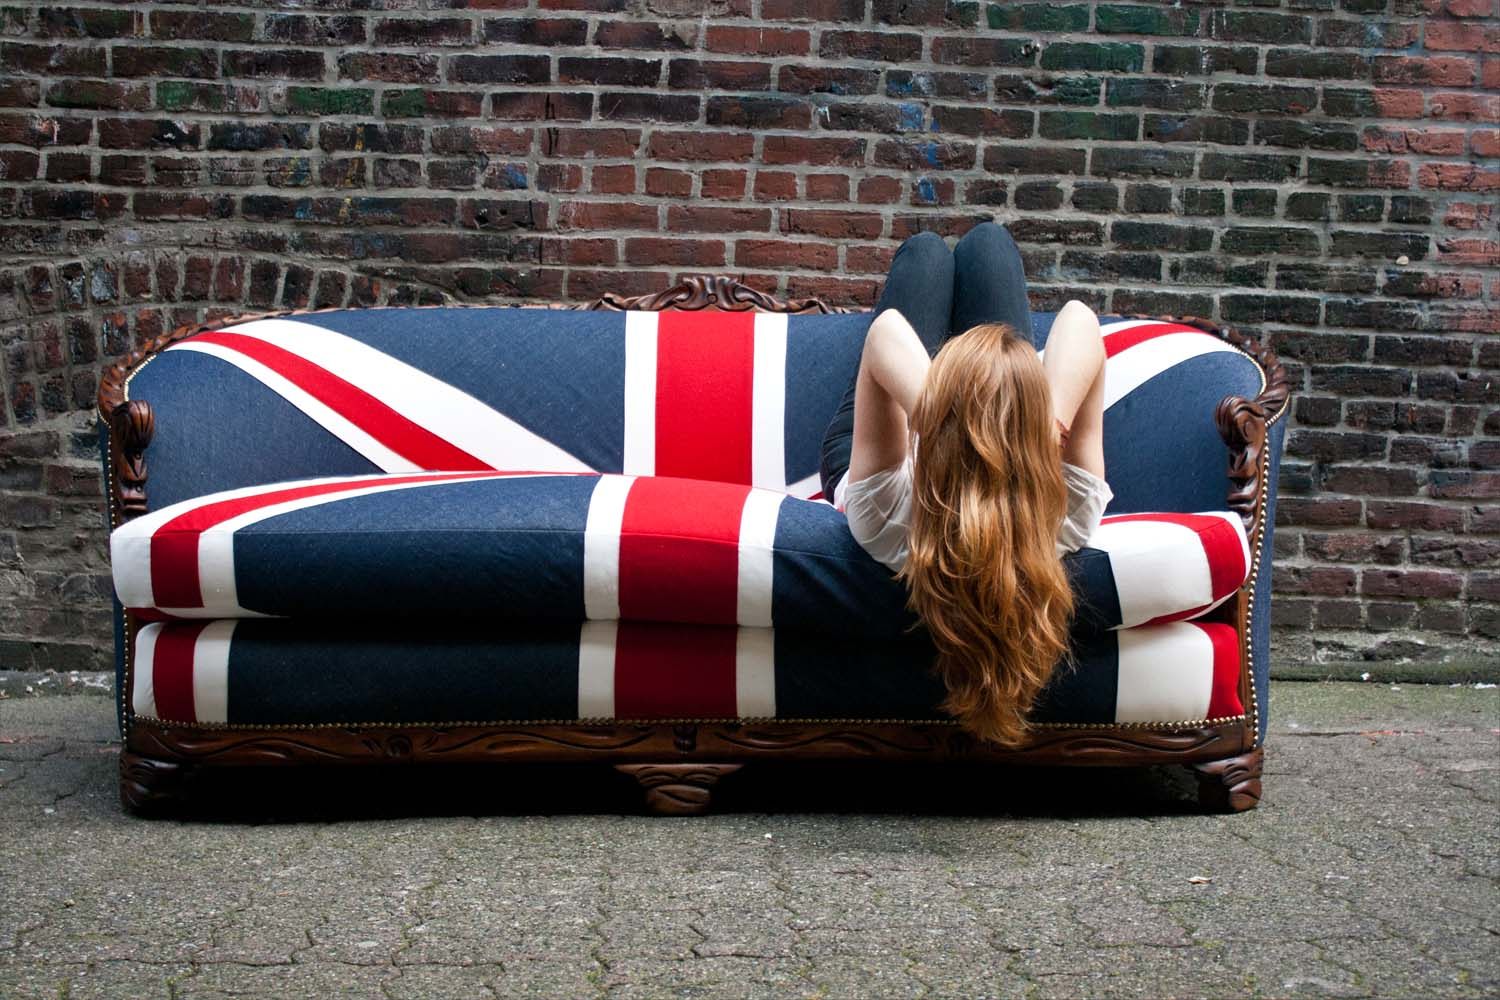 Creative antique sofa restoration. Union Jack flag sofa photo by Kara Joi in our beautiful and eclectic Gastown